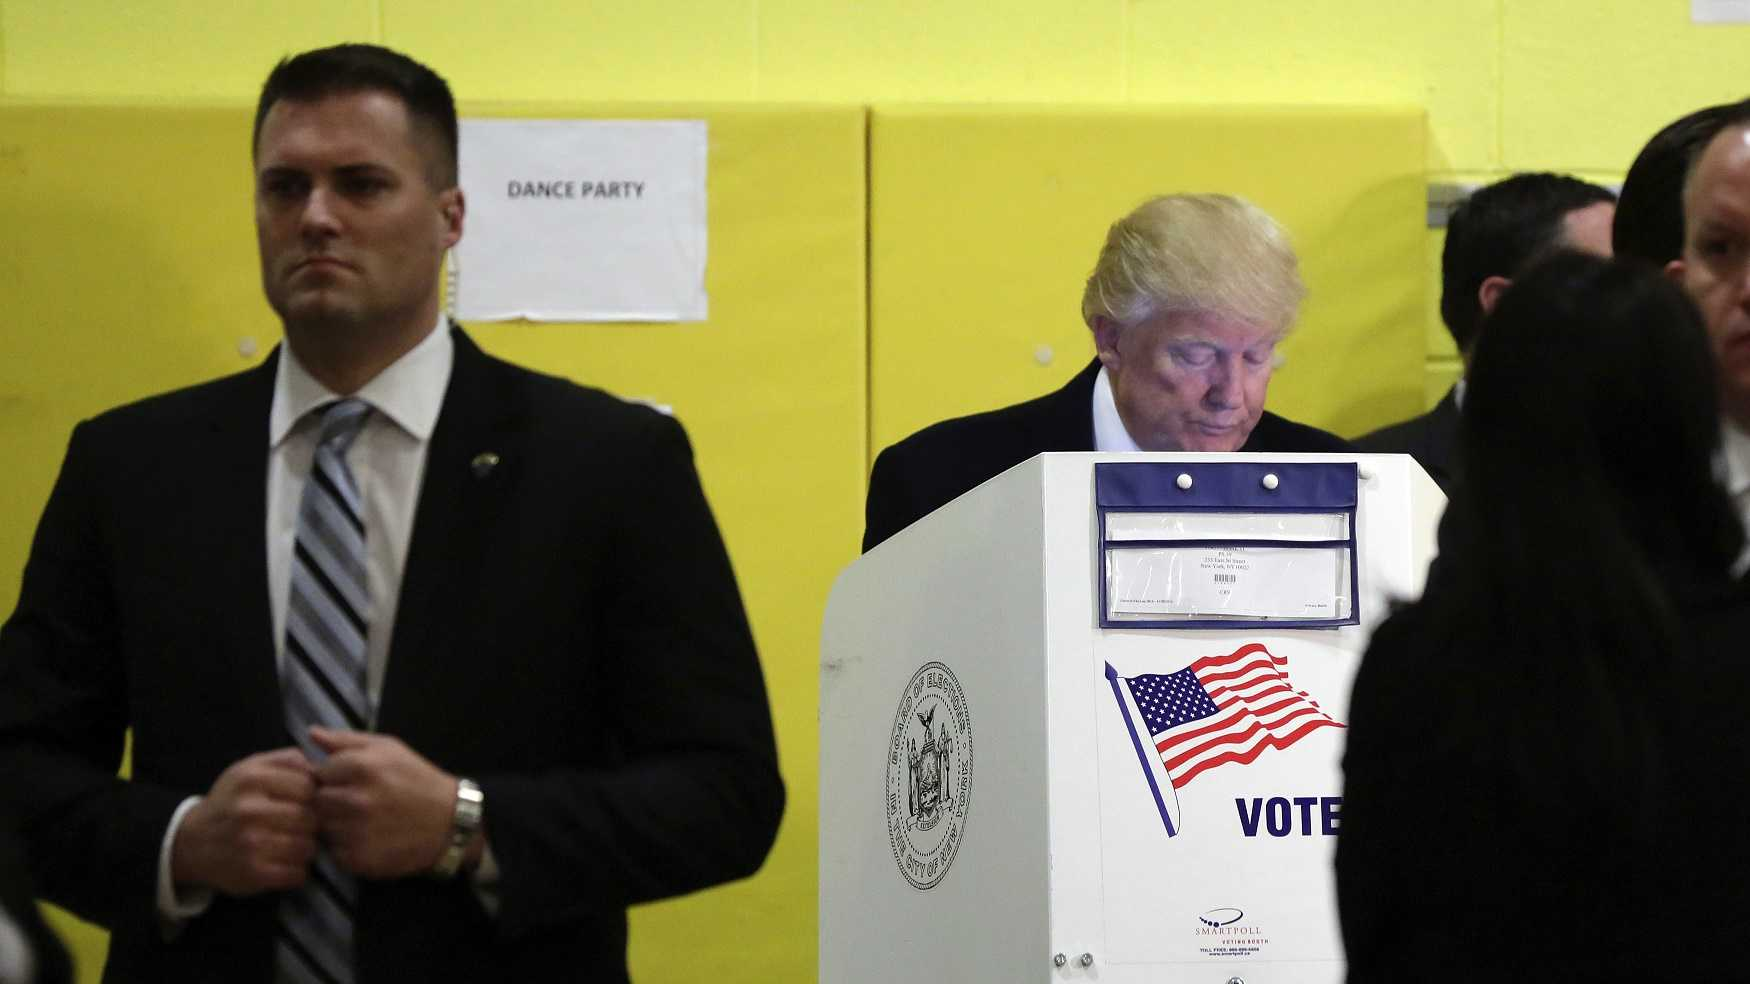 Donald Trump votes in New York on Nov. 8, 2016.